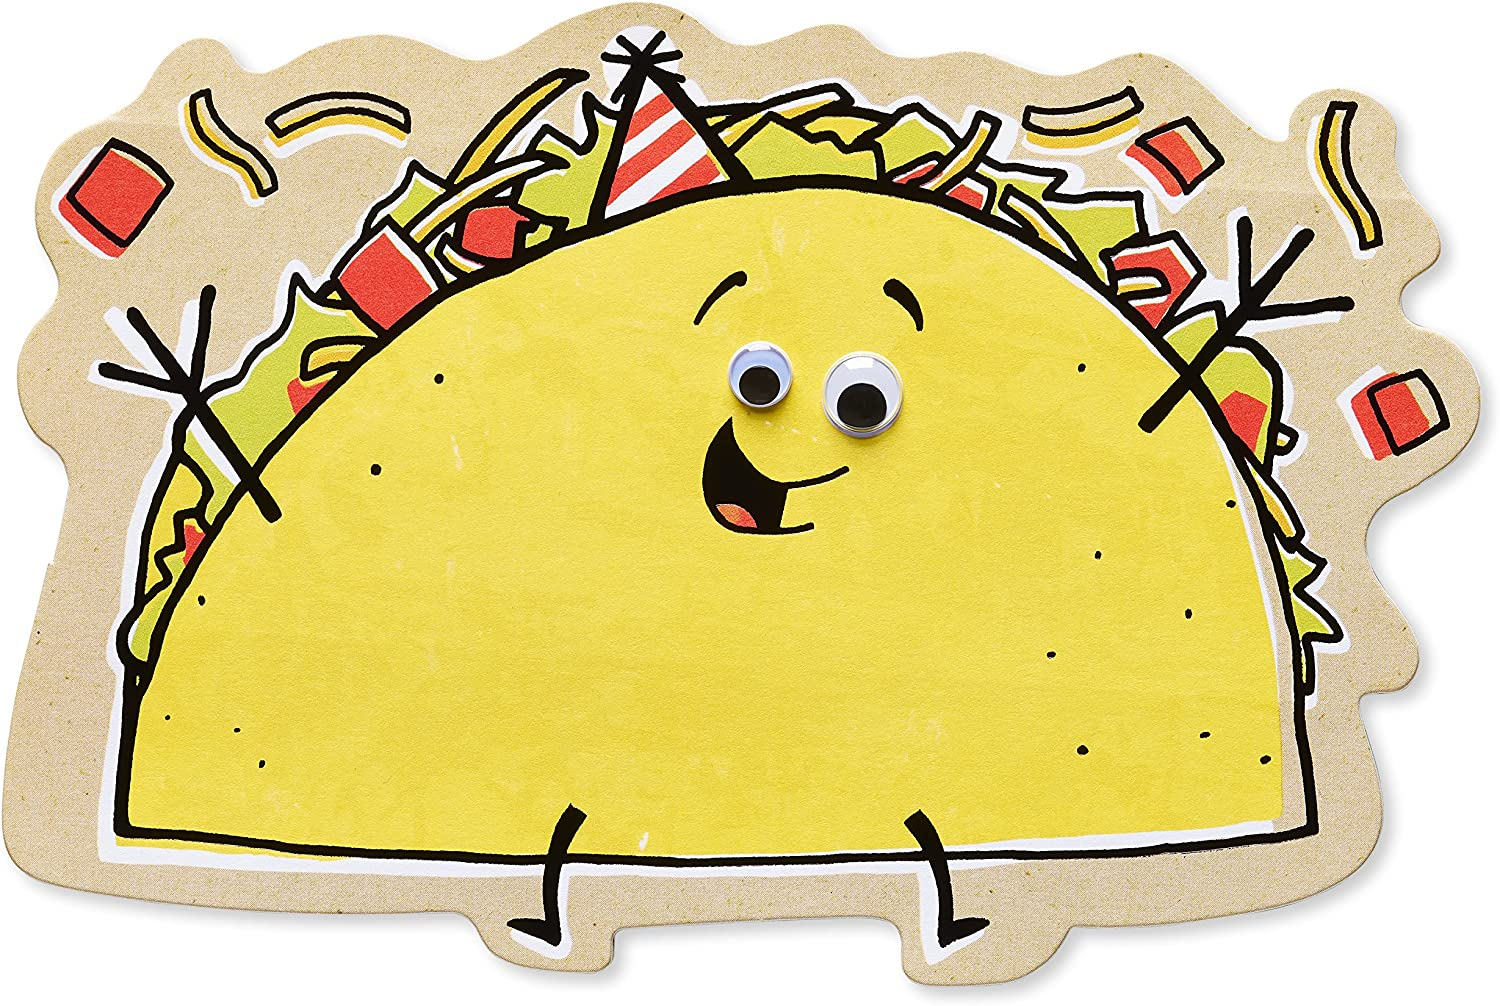 American Greetings Funny Birthday Card (Taco)